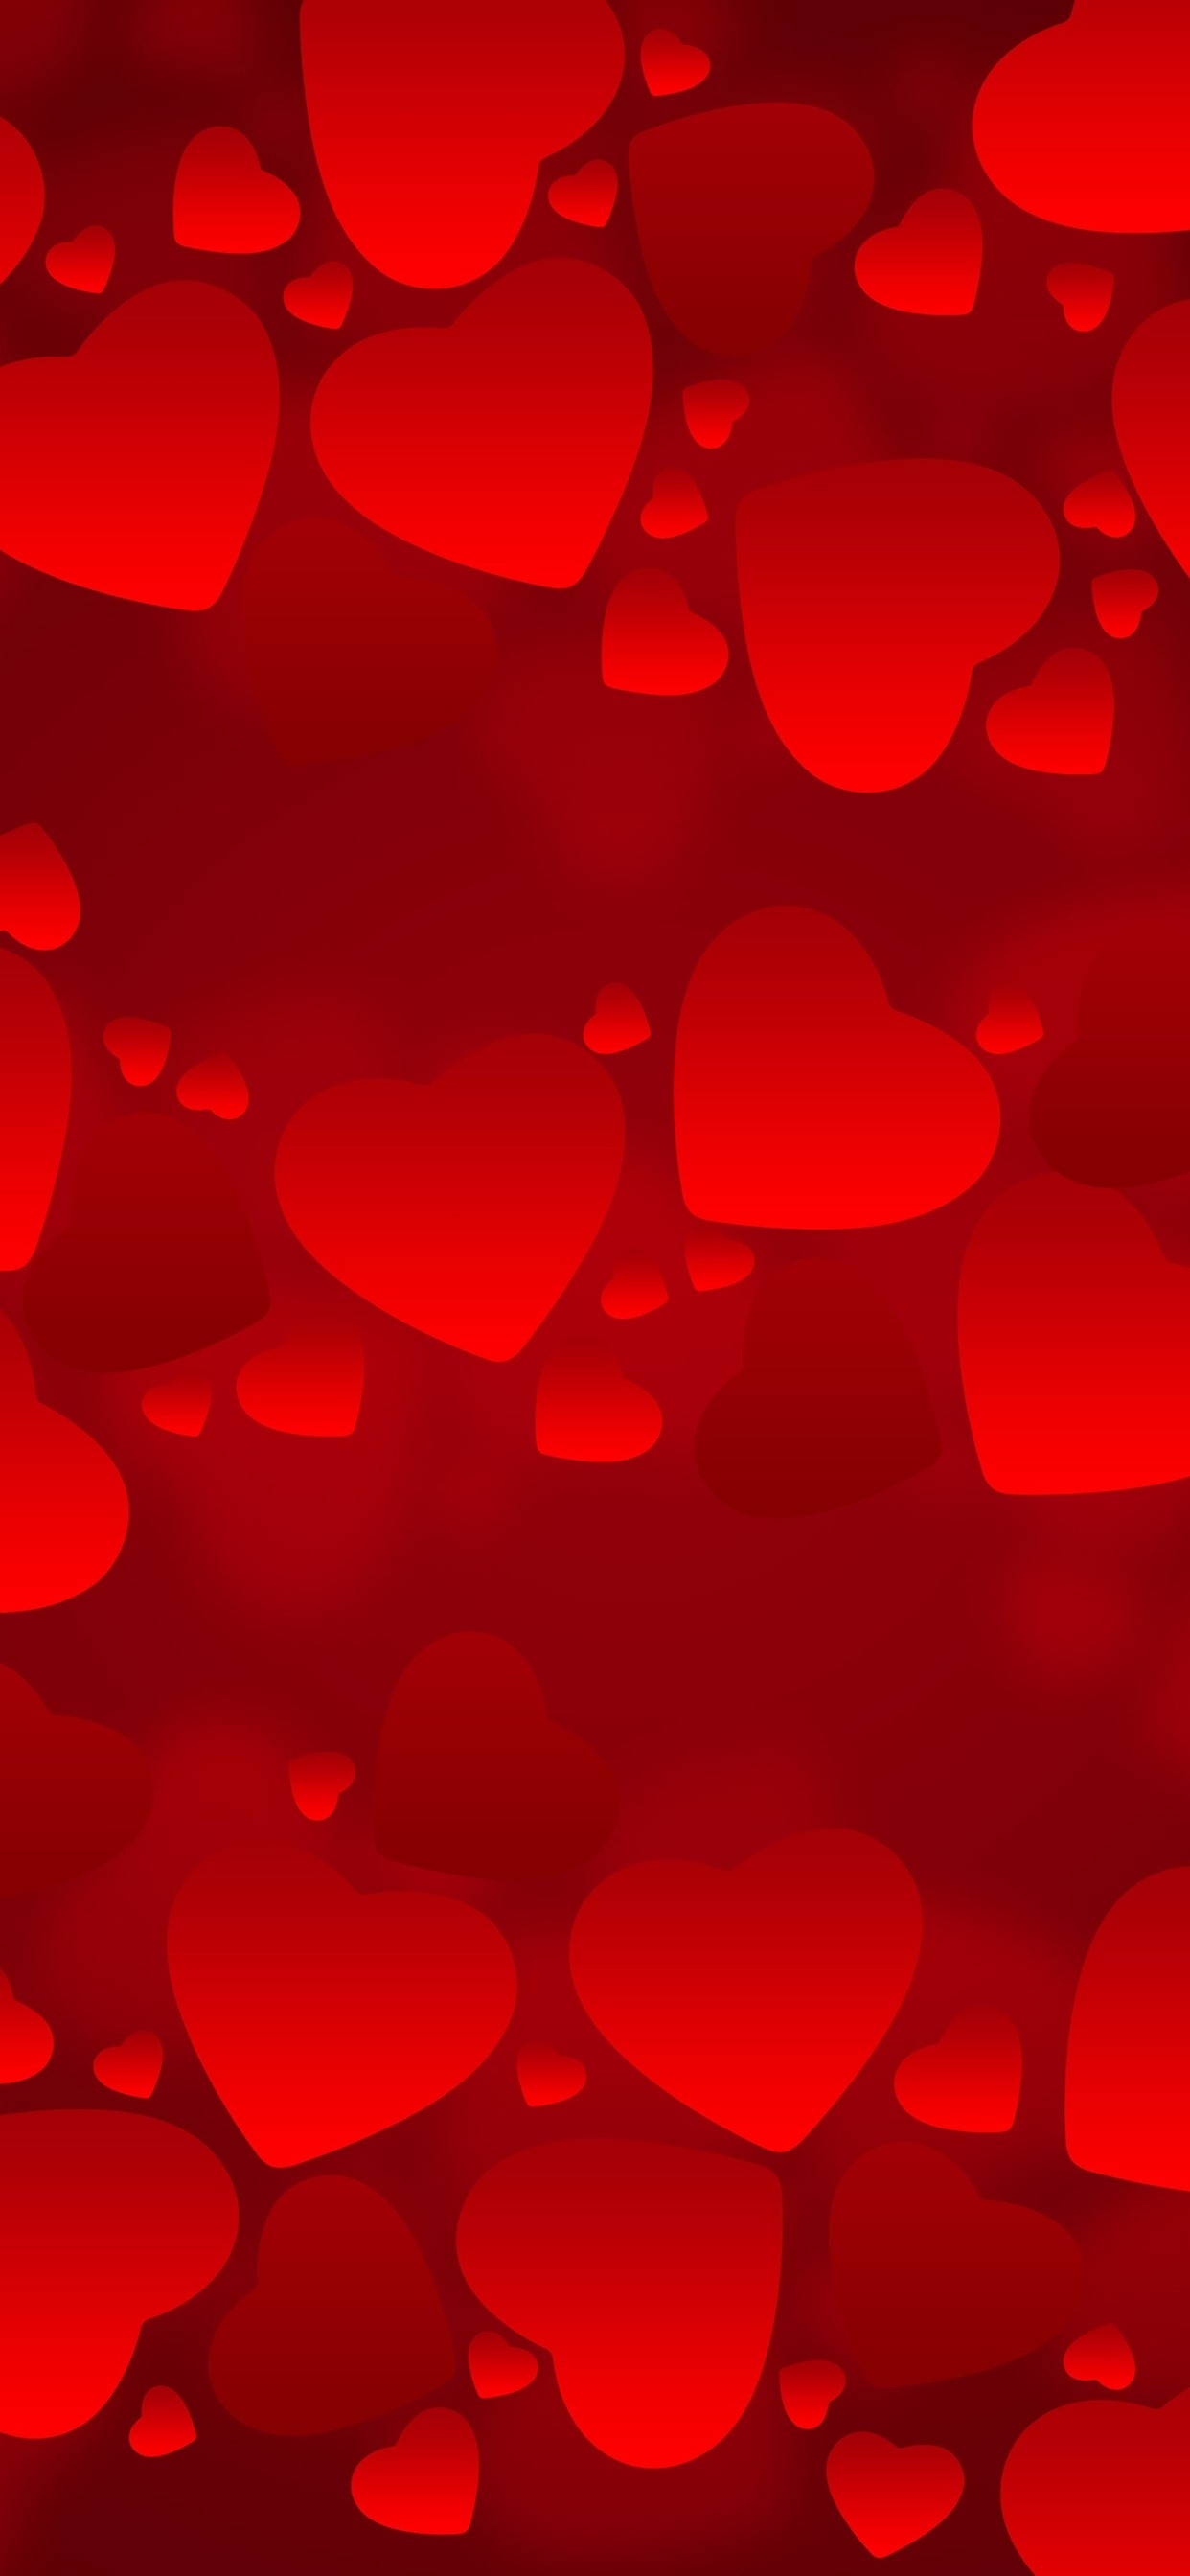 Iphone Wallpaper Many Red Love Hearts Romantic Background Hearts Background 1242x2688 Wallpaper Teahub Io